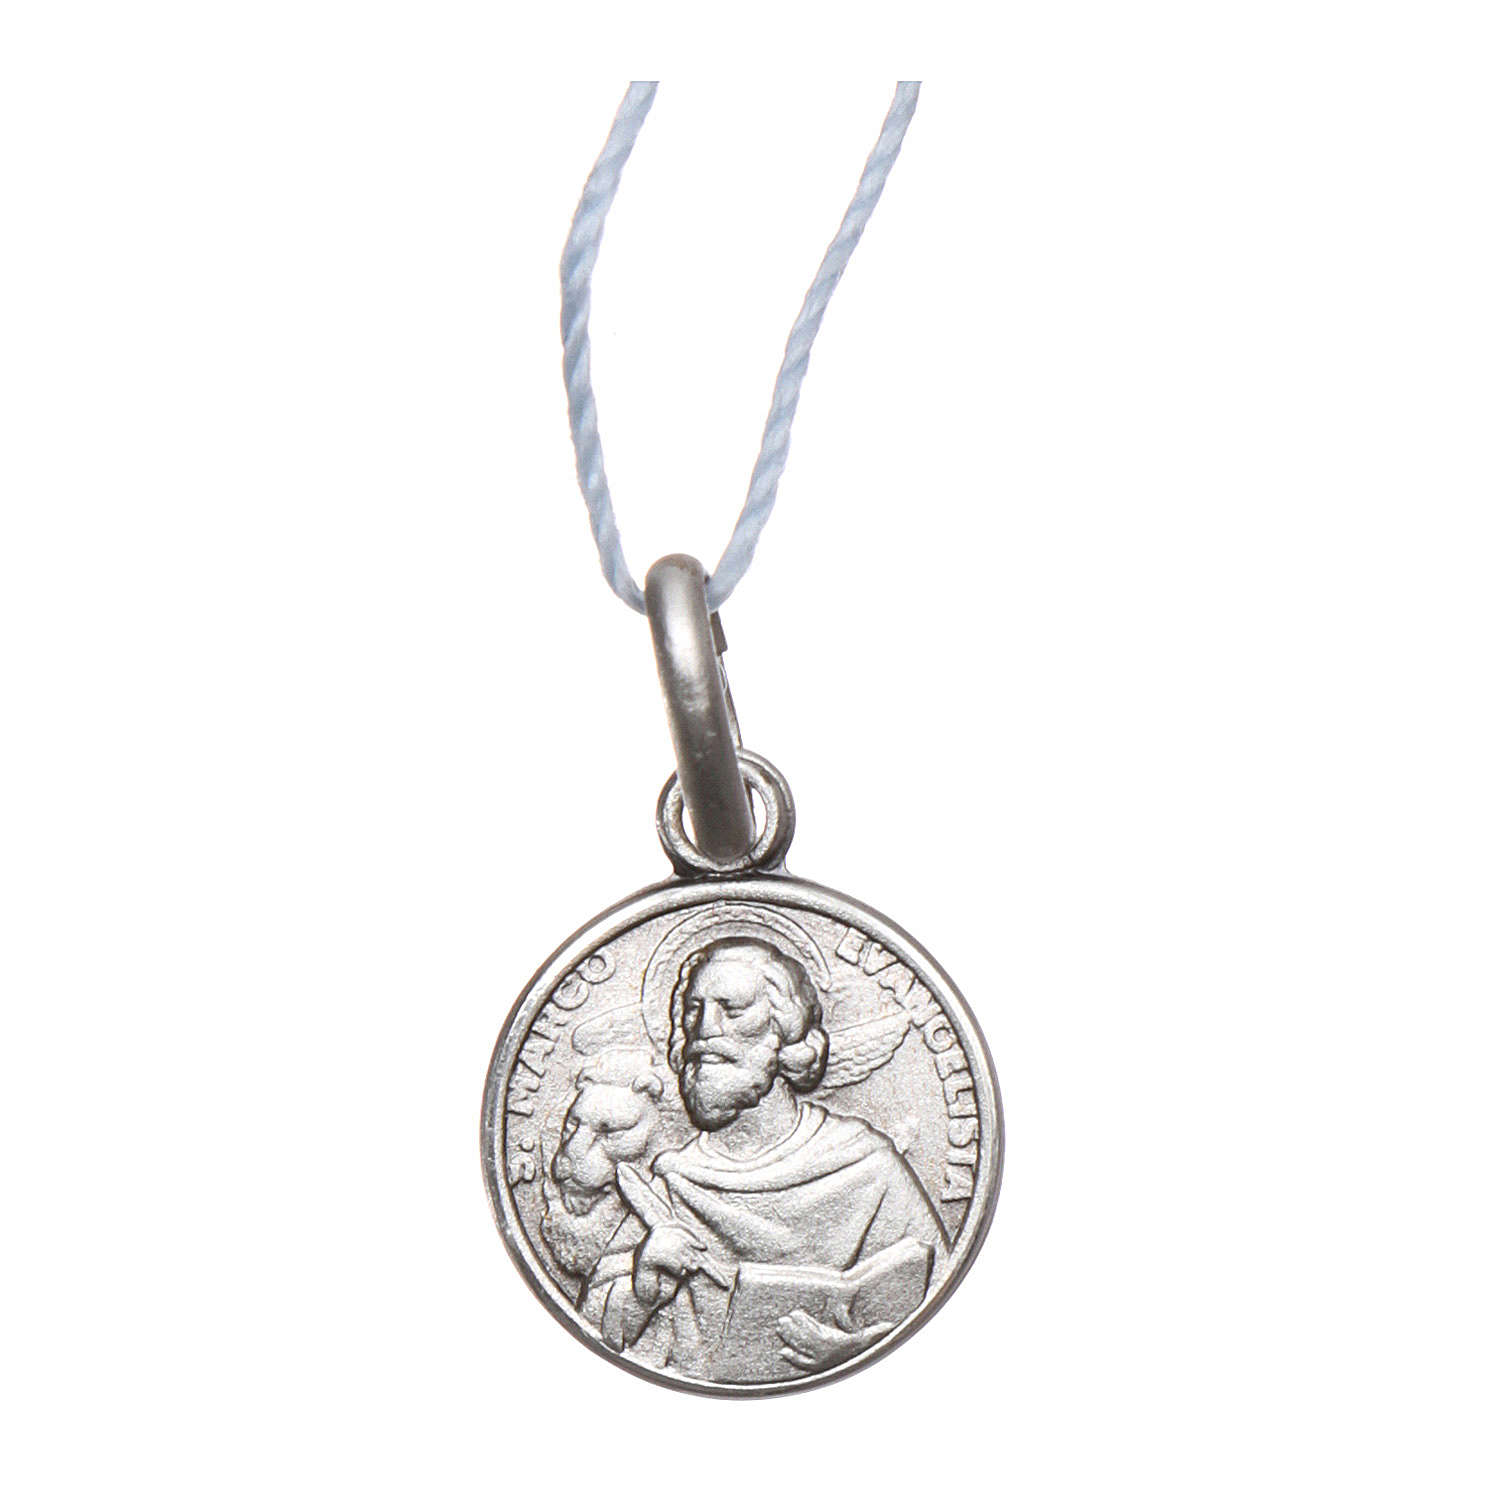 Rhodium plated medal with St. Mark the Evangelist 10 mm 4